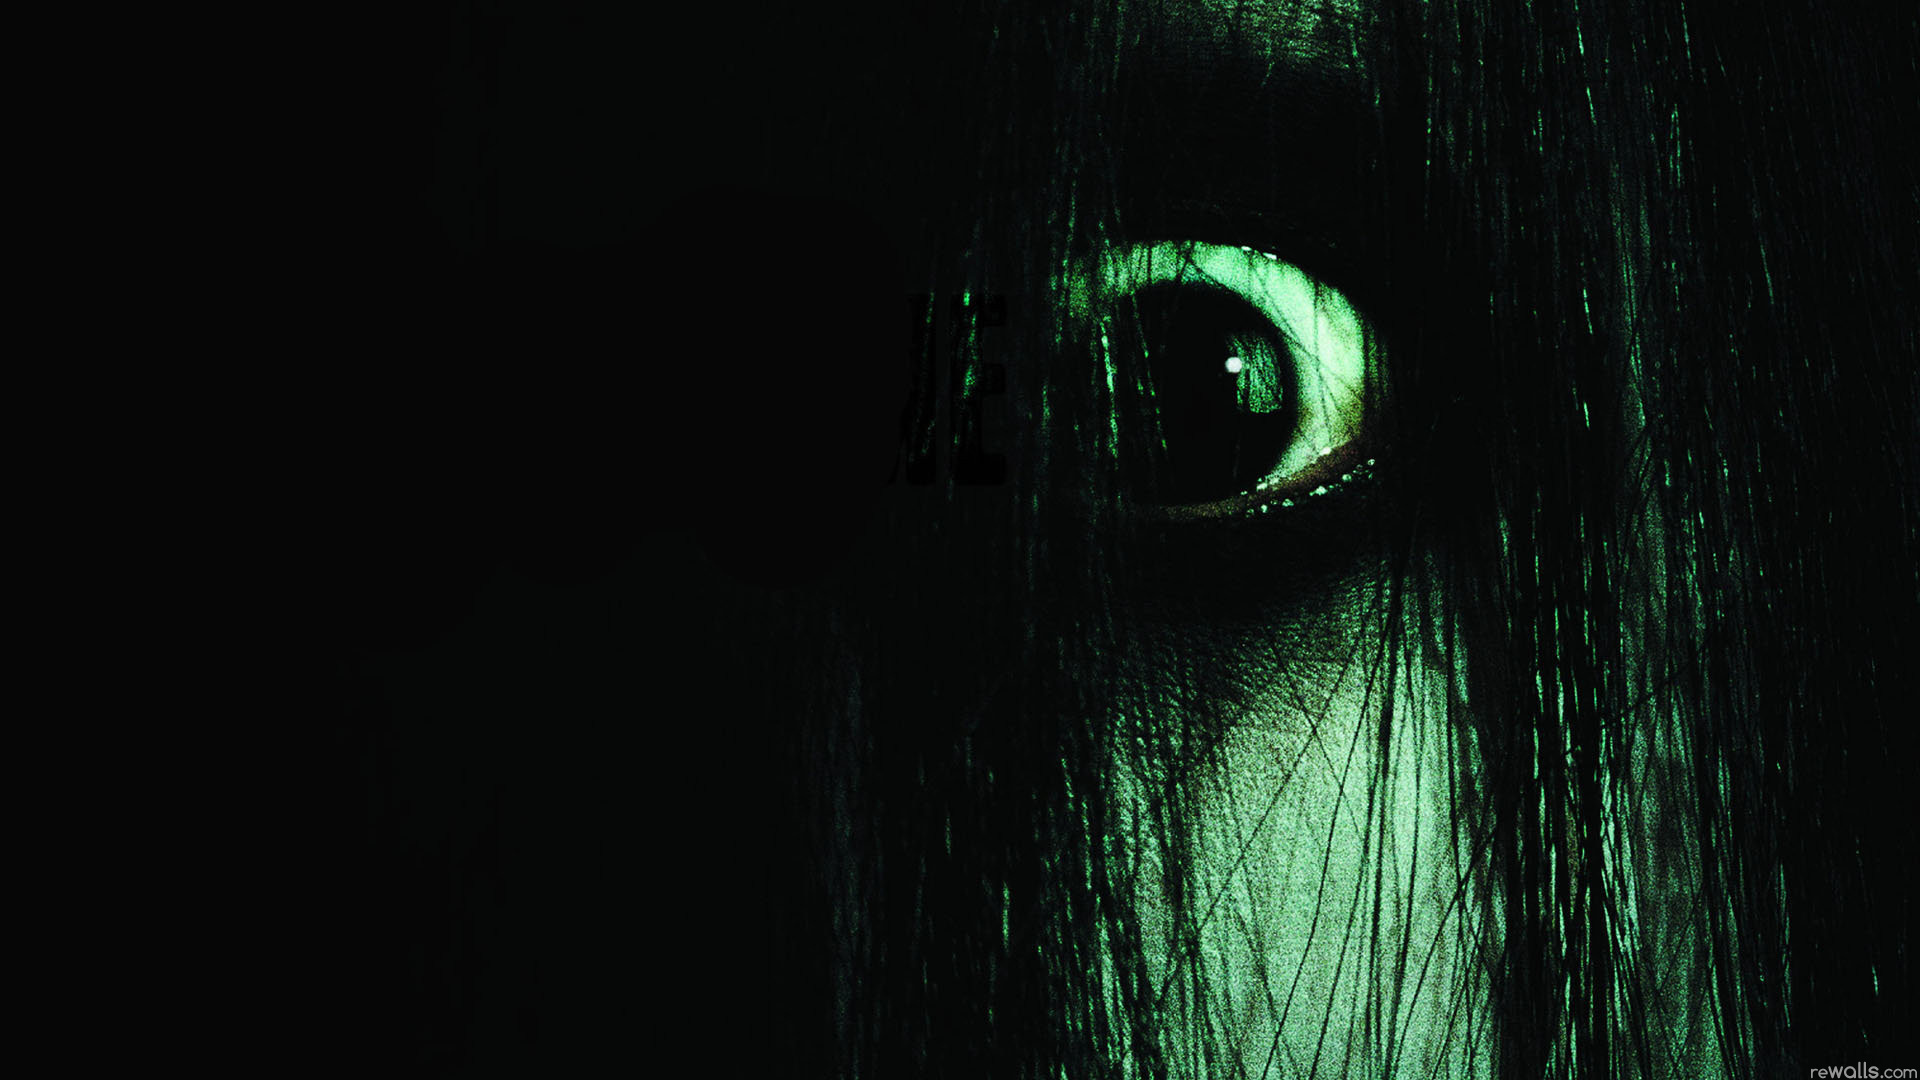 87 most haunting scary wallpapers of all time - Most popular hd wallpapers 1080p ...